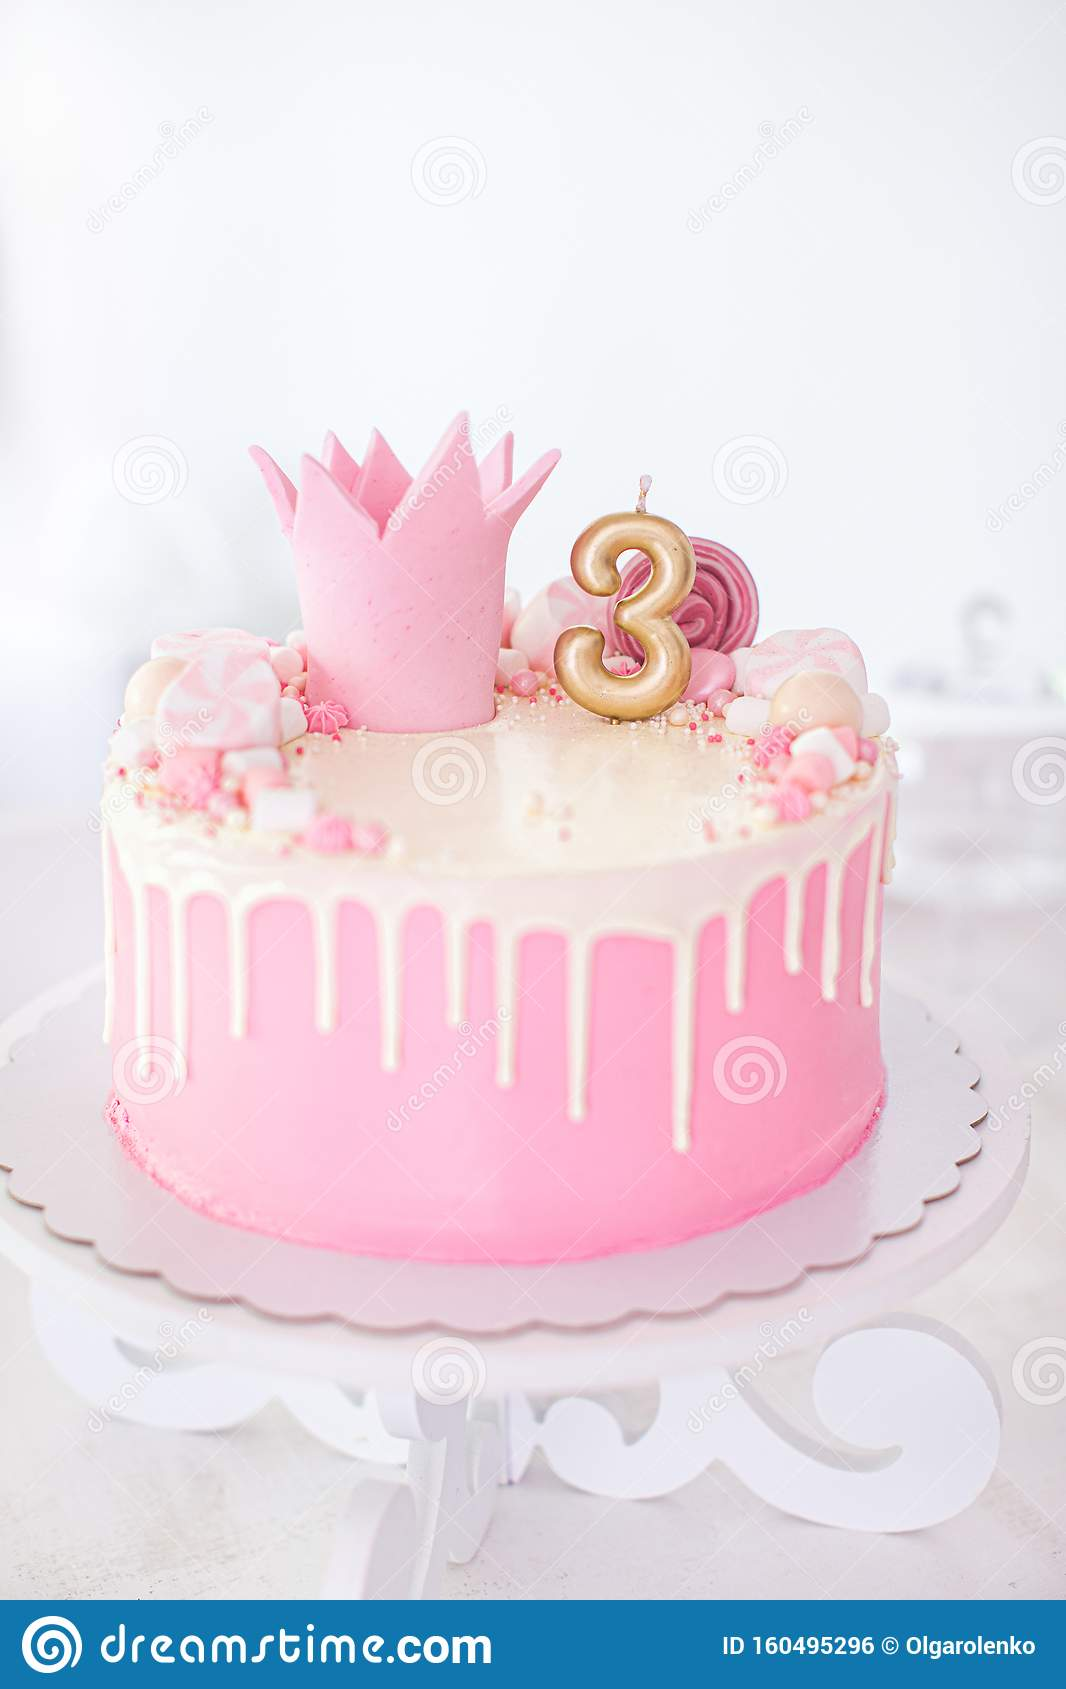 Marvelous Happy Birthday Pink And White Cake With Marshmellows And A Crown Birthday Cards Printable Trancafe Filternl